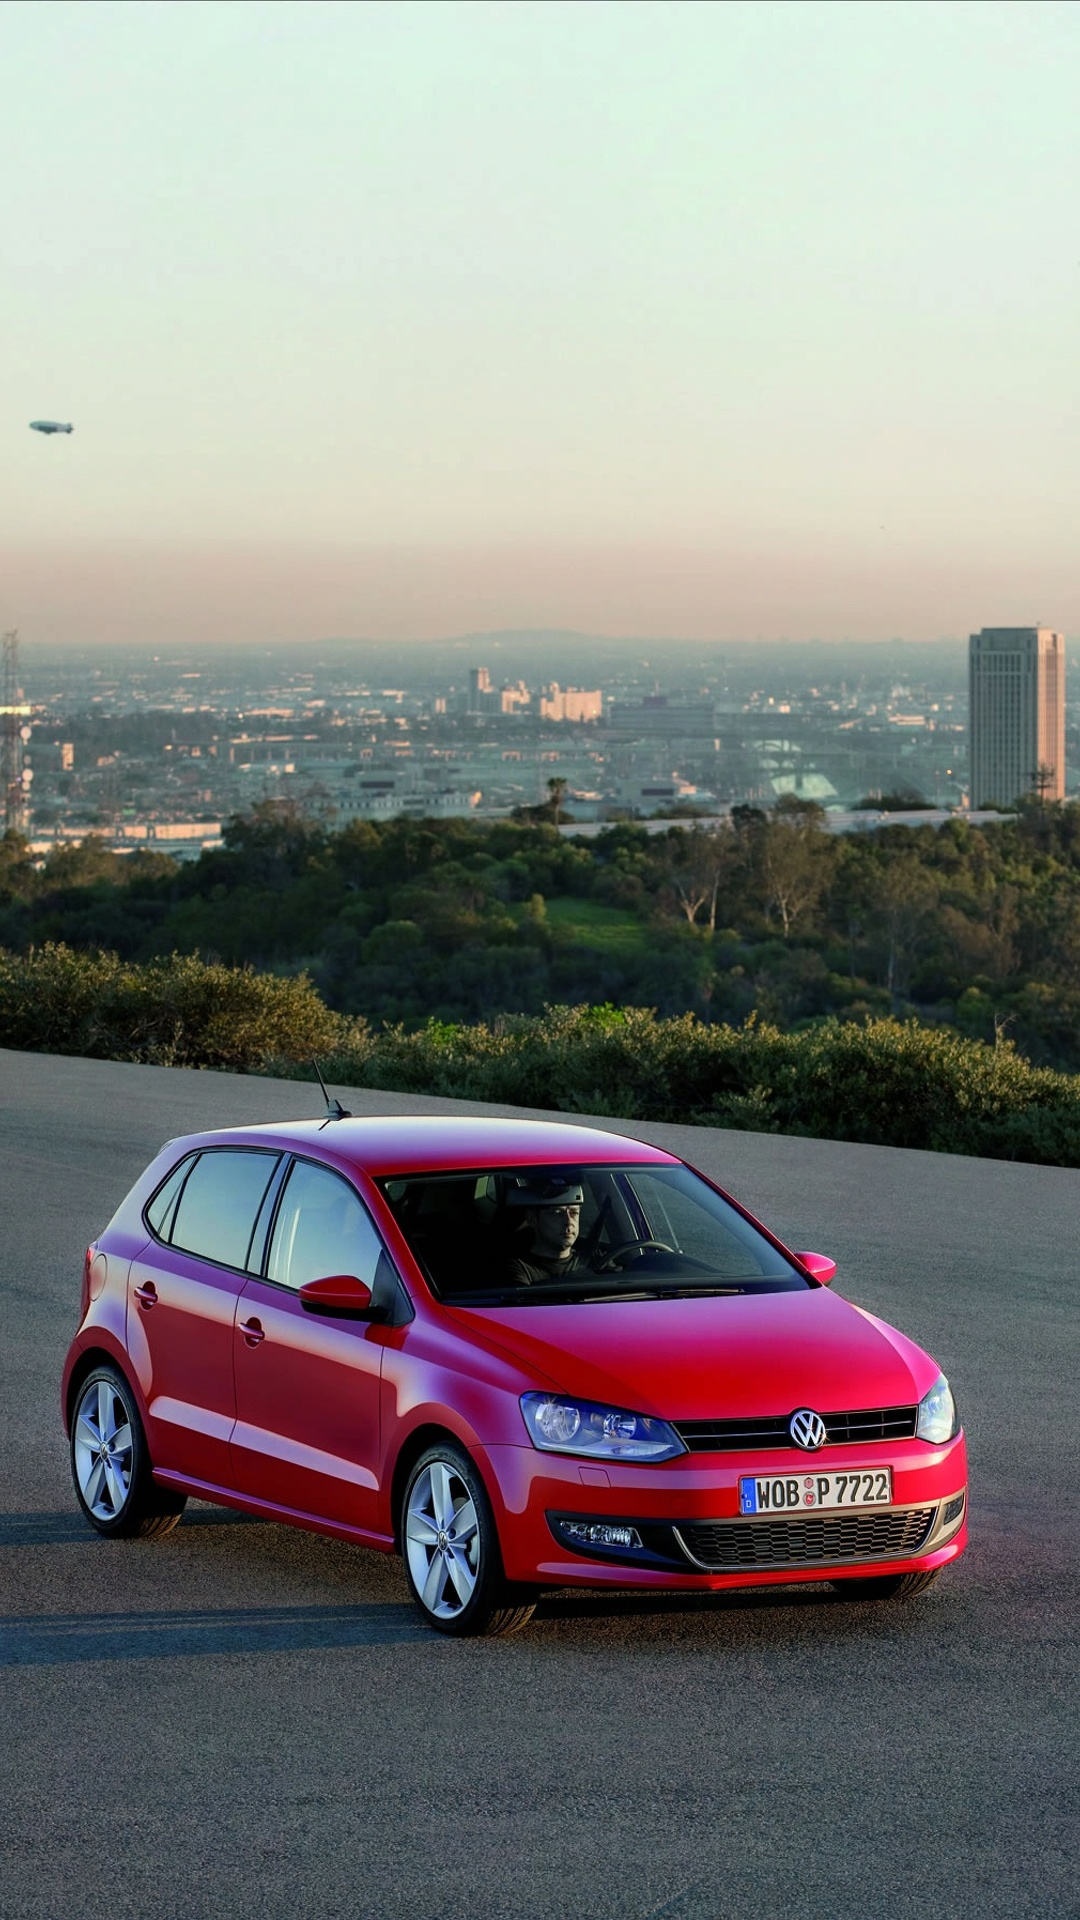 Volkswagen Polo Mk V Officially Unveiled in Geneva